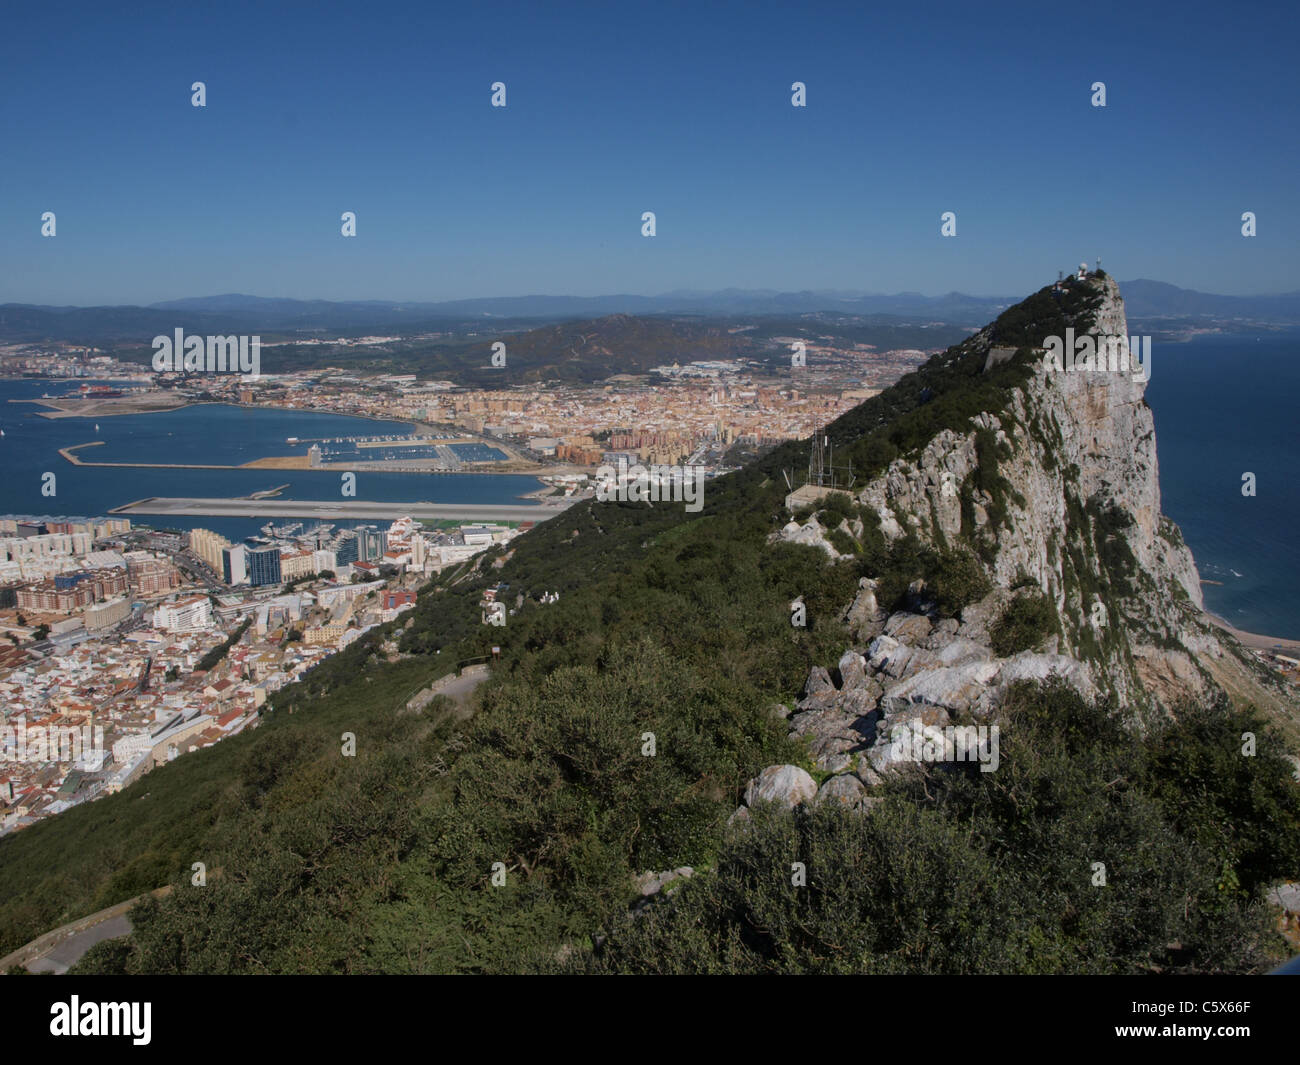 The famous Gibraltar rock and sea. - Stock Image